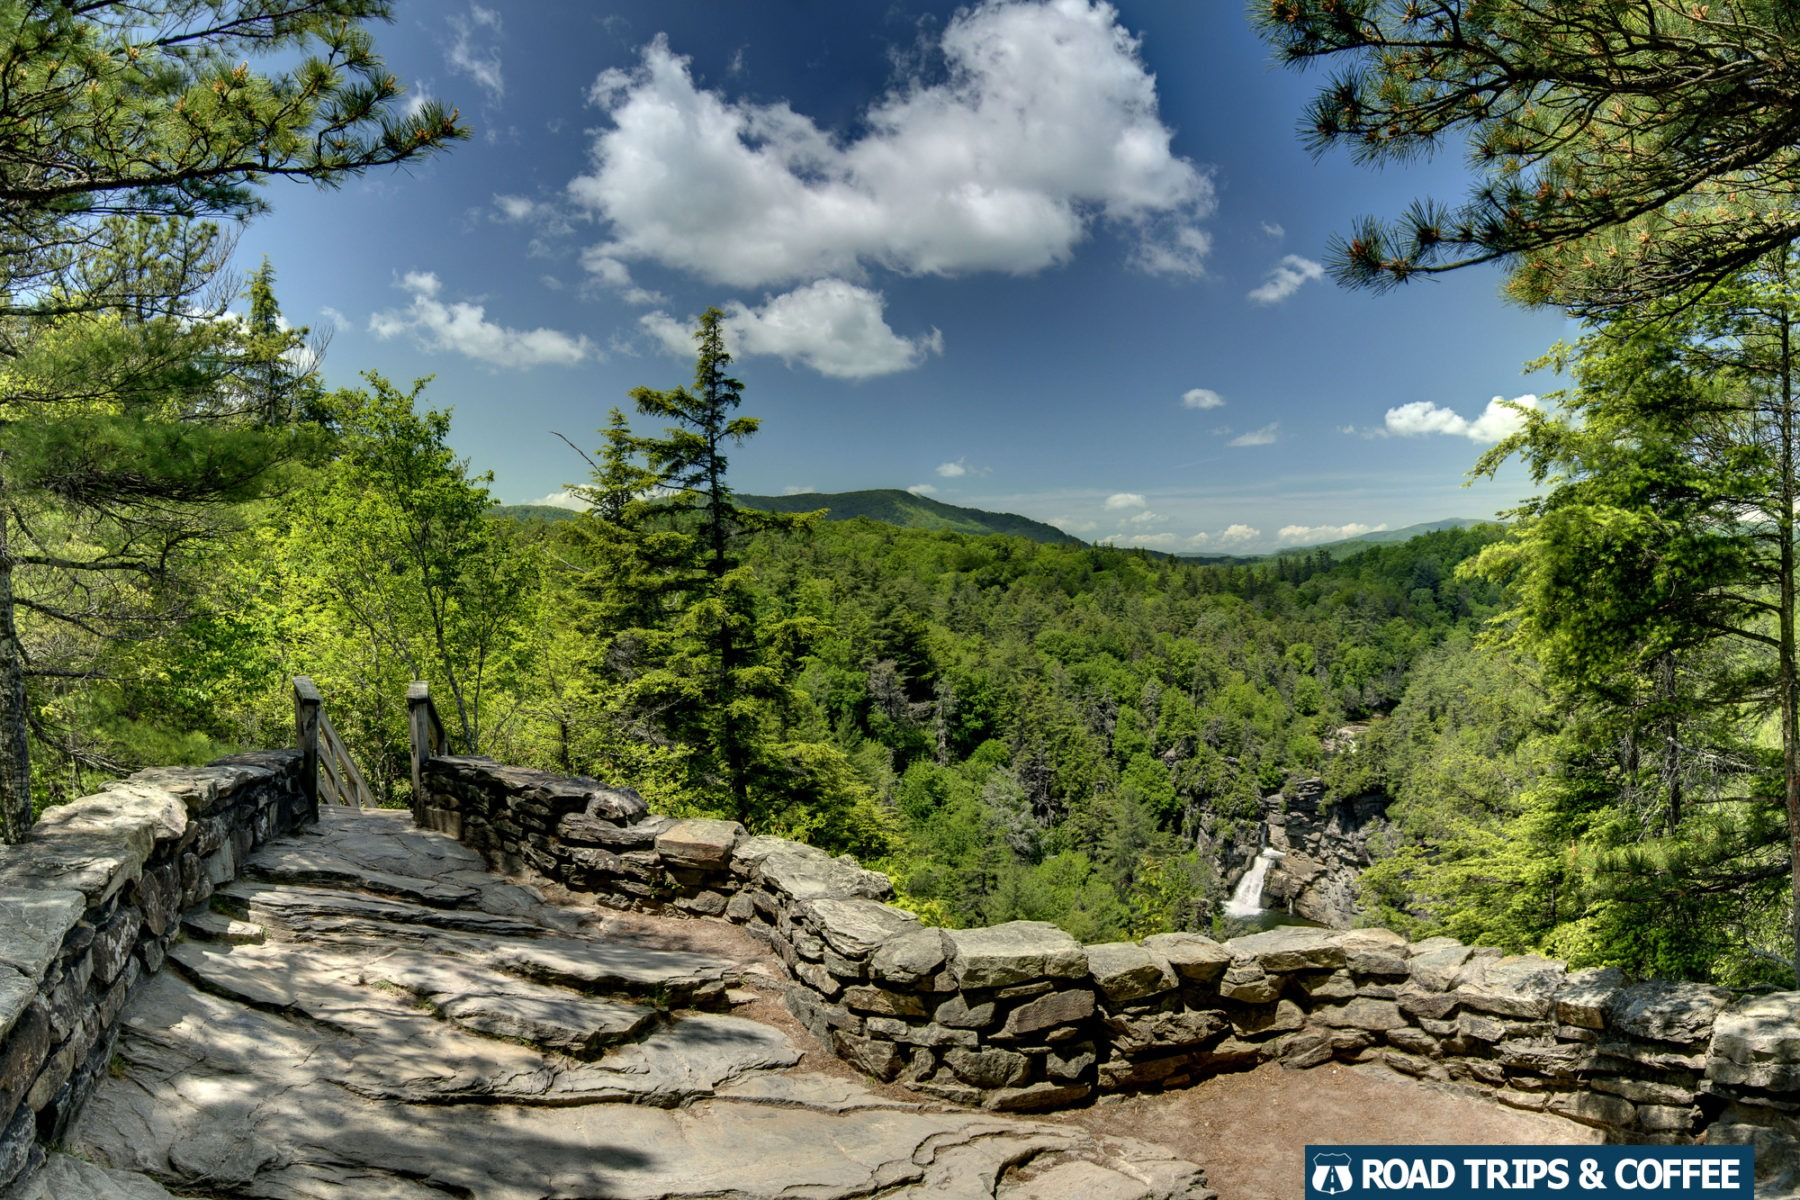 A wide scenic overlook with the waterfall in the distance at Erwin's View at Linville Falls on the Blue Ridge Parkway in North Carolina